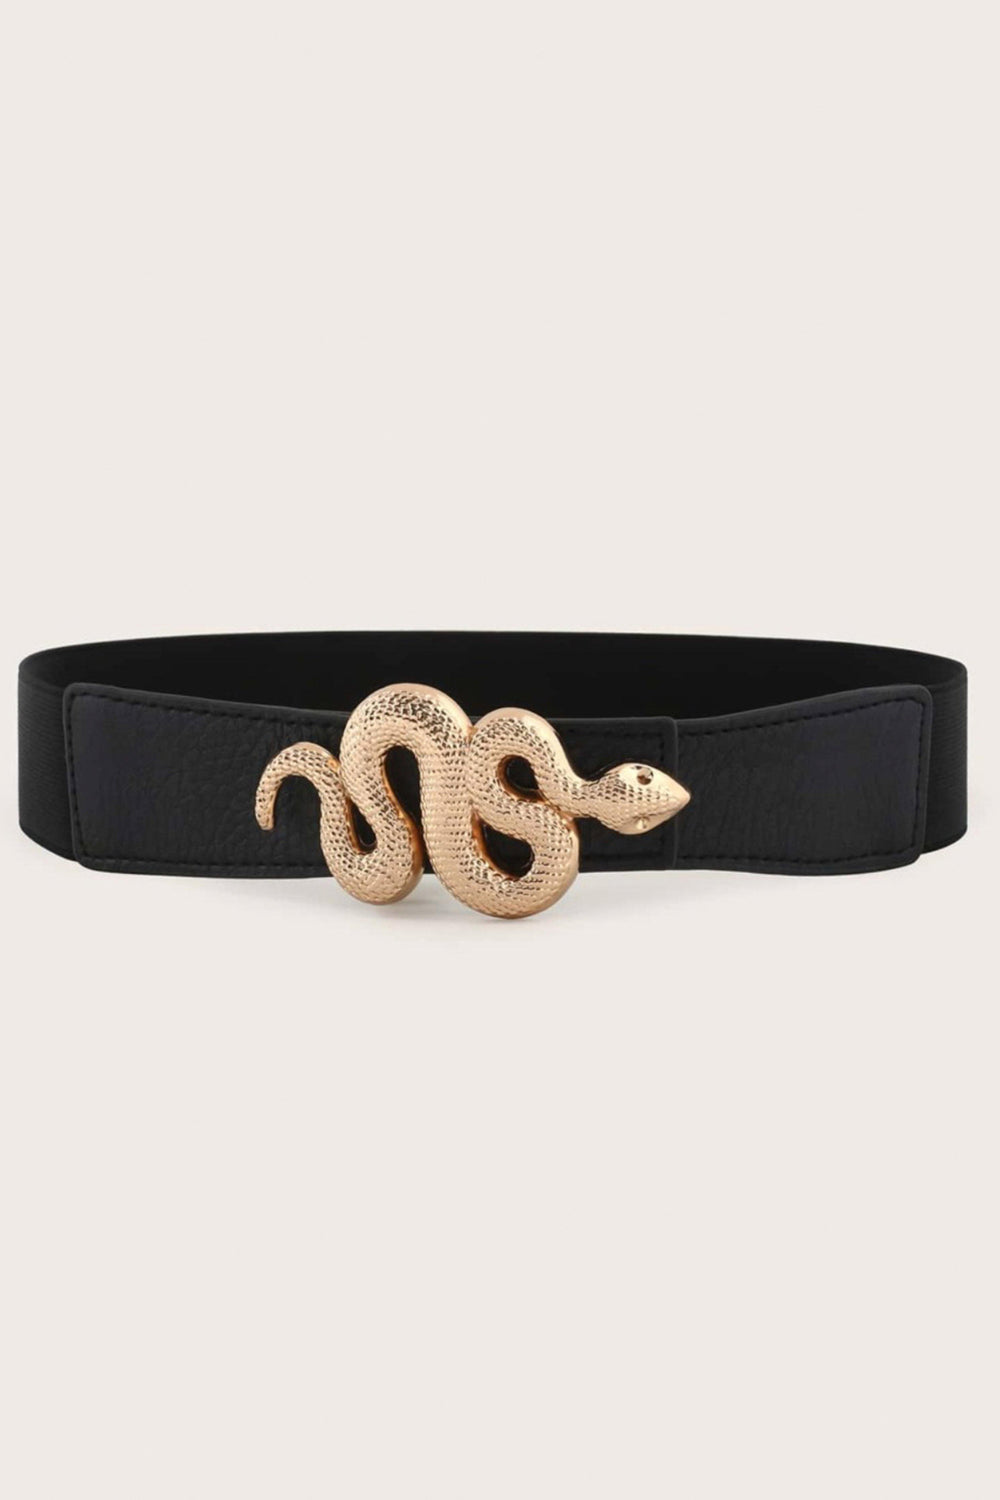 SNAKE BUCKLE BELT | Women's Online Shopping | CHICLEFRIQUE